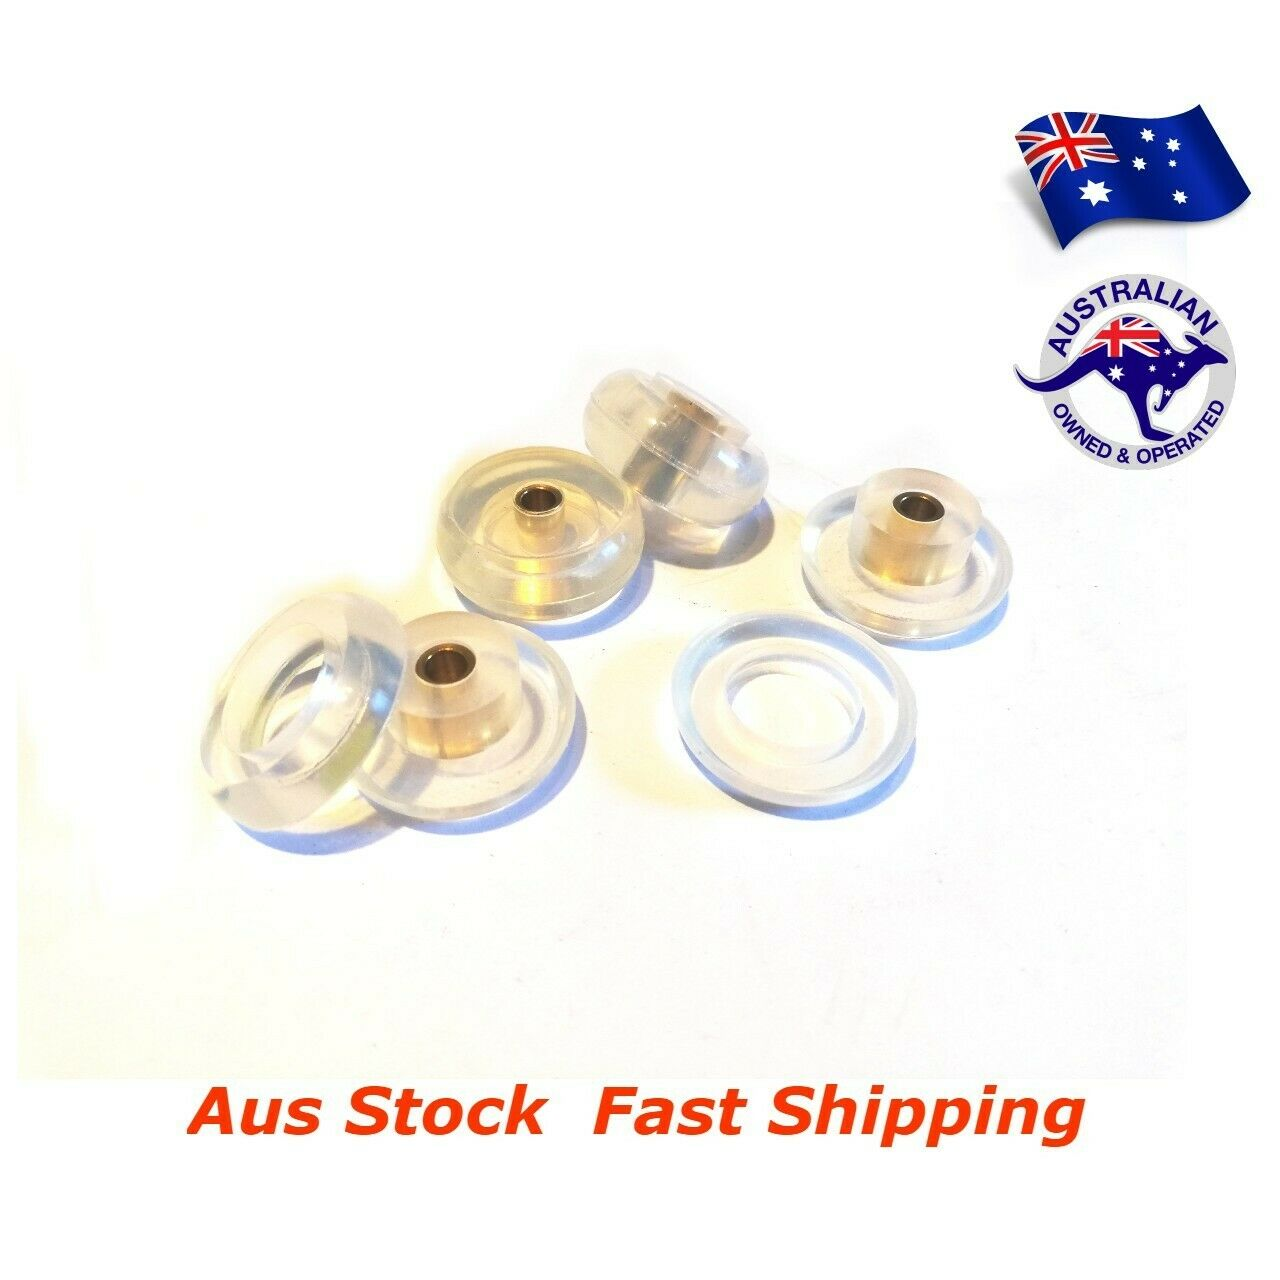 4pc Gel Two Piece Vibration and Shock Mount 25mm D Suits 3.7 to 8kg, -40 to 200c